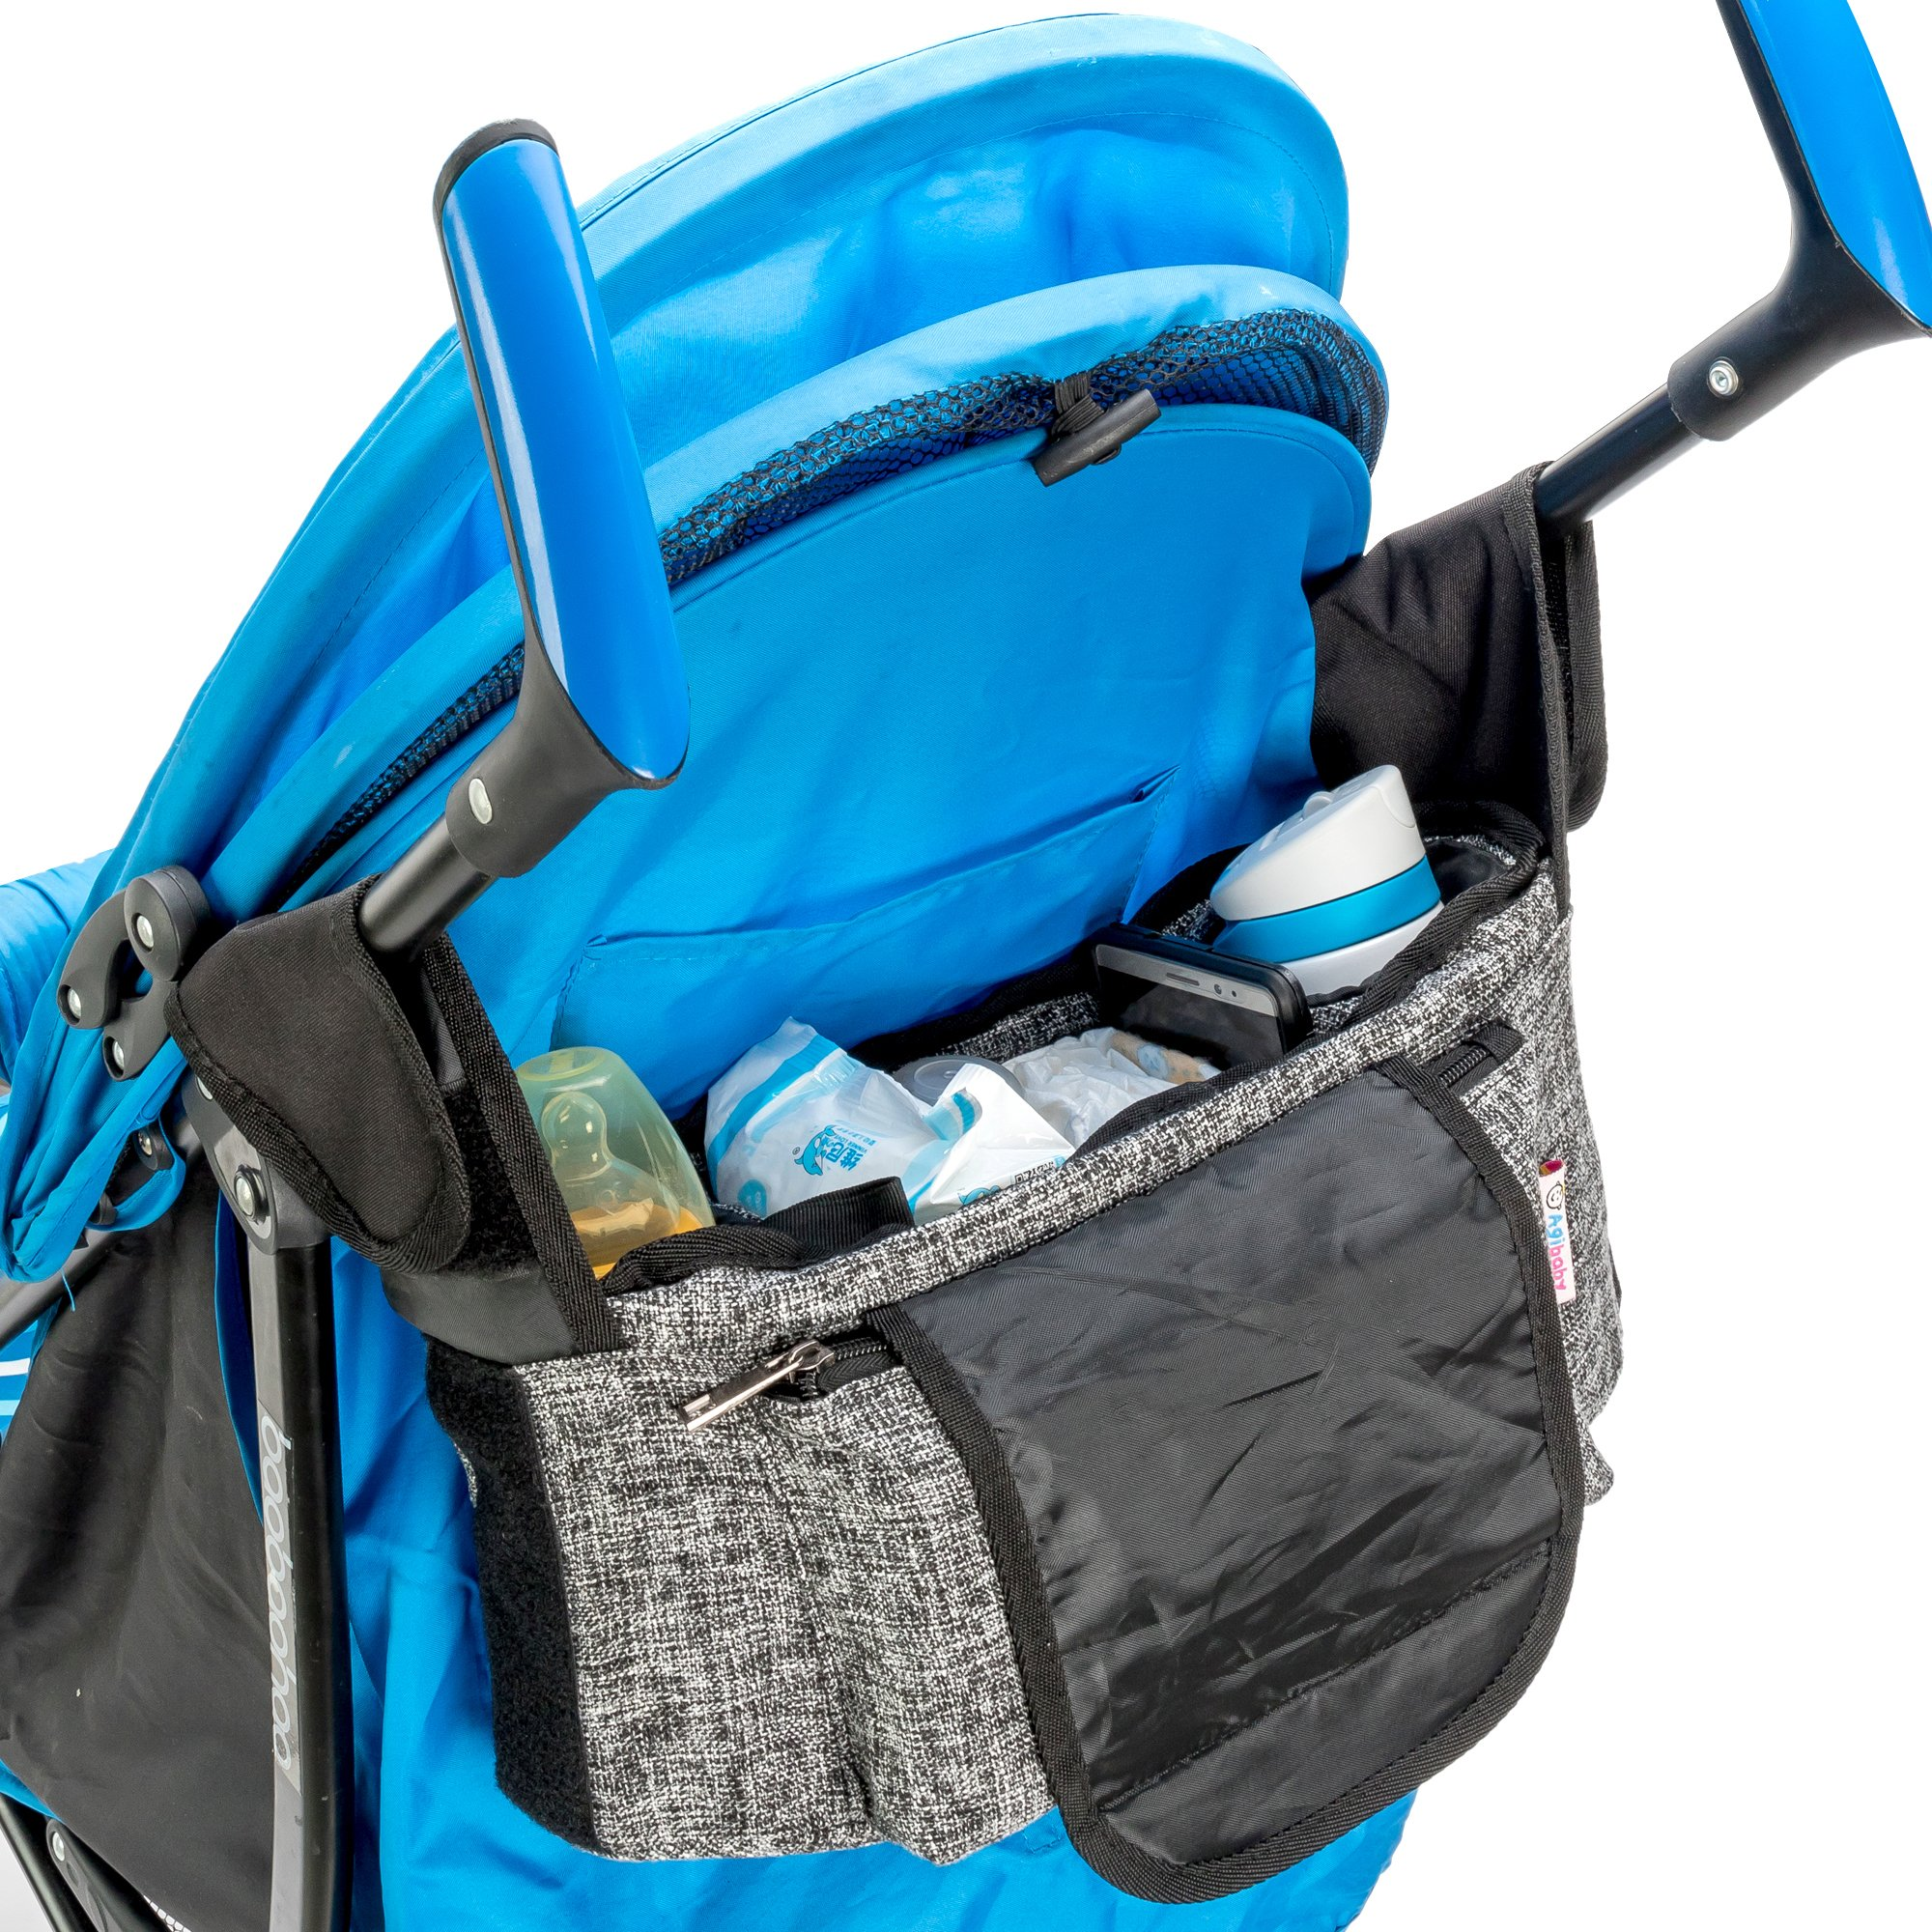 Agibaby Stroller Organizer, Insulated Deep Cup Holders, Instant Access Wipe Pocket, Universal Strap Fit, Large Storage Space by Agibaby (Image #4)